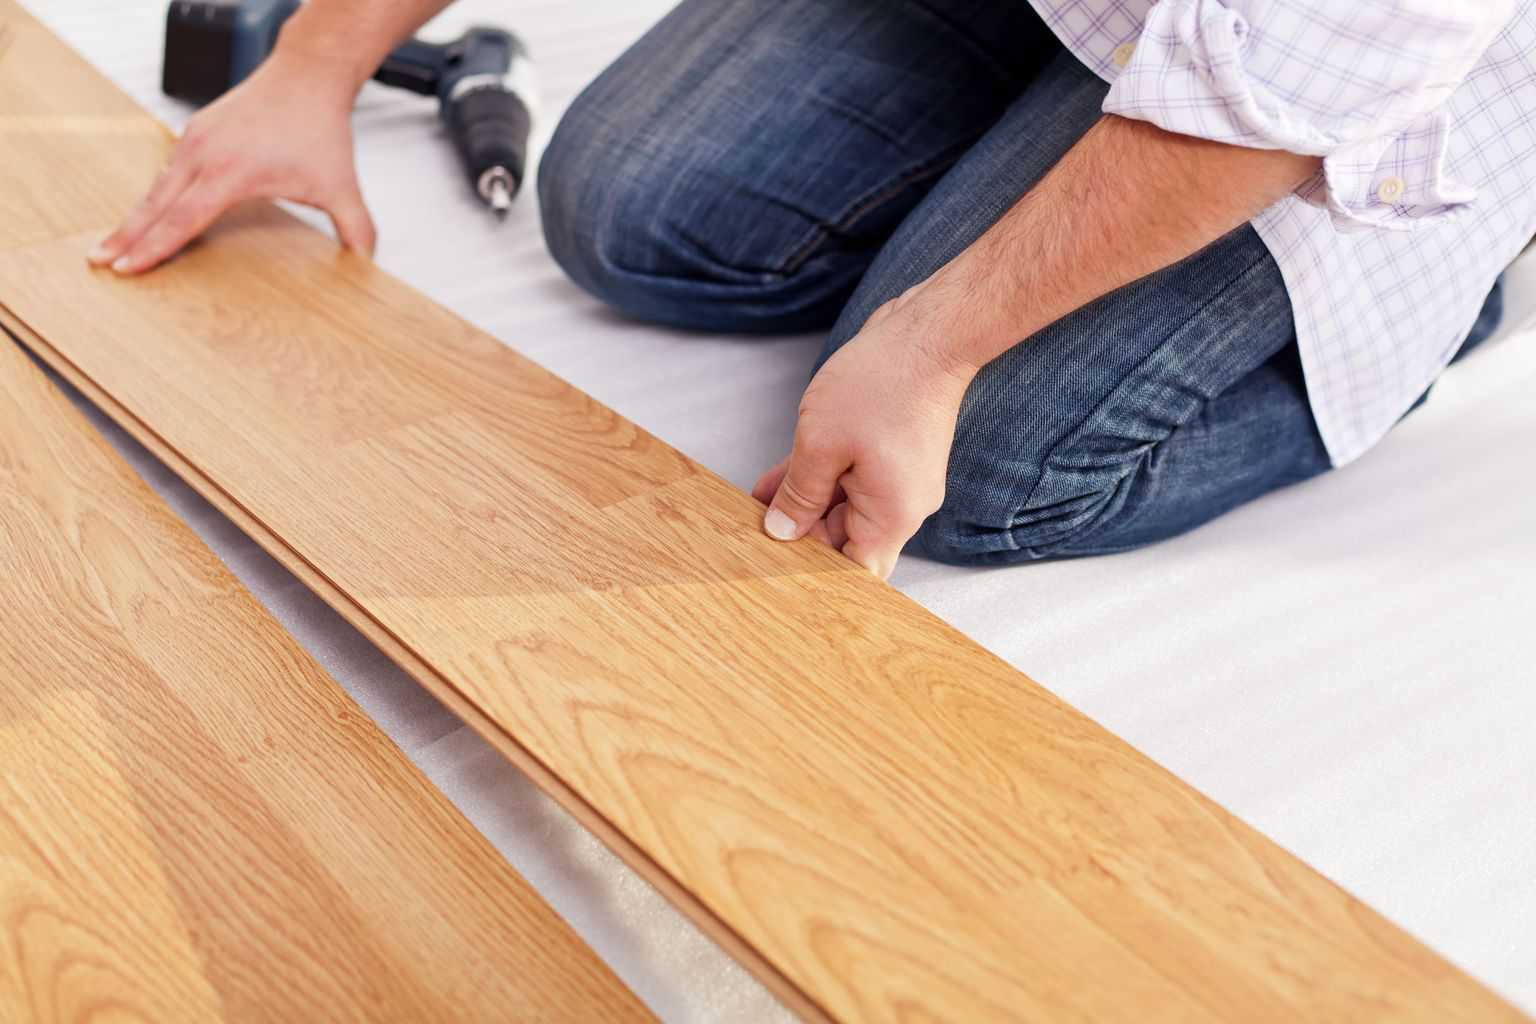 Damage To Boards Is Usually Easier And Cheaper To Deal With If You Get Started With The Laminate Flooring Repair Process As Soon As You Notice The Signs